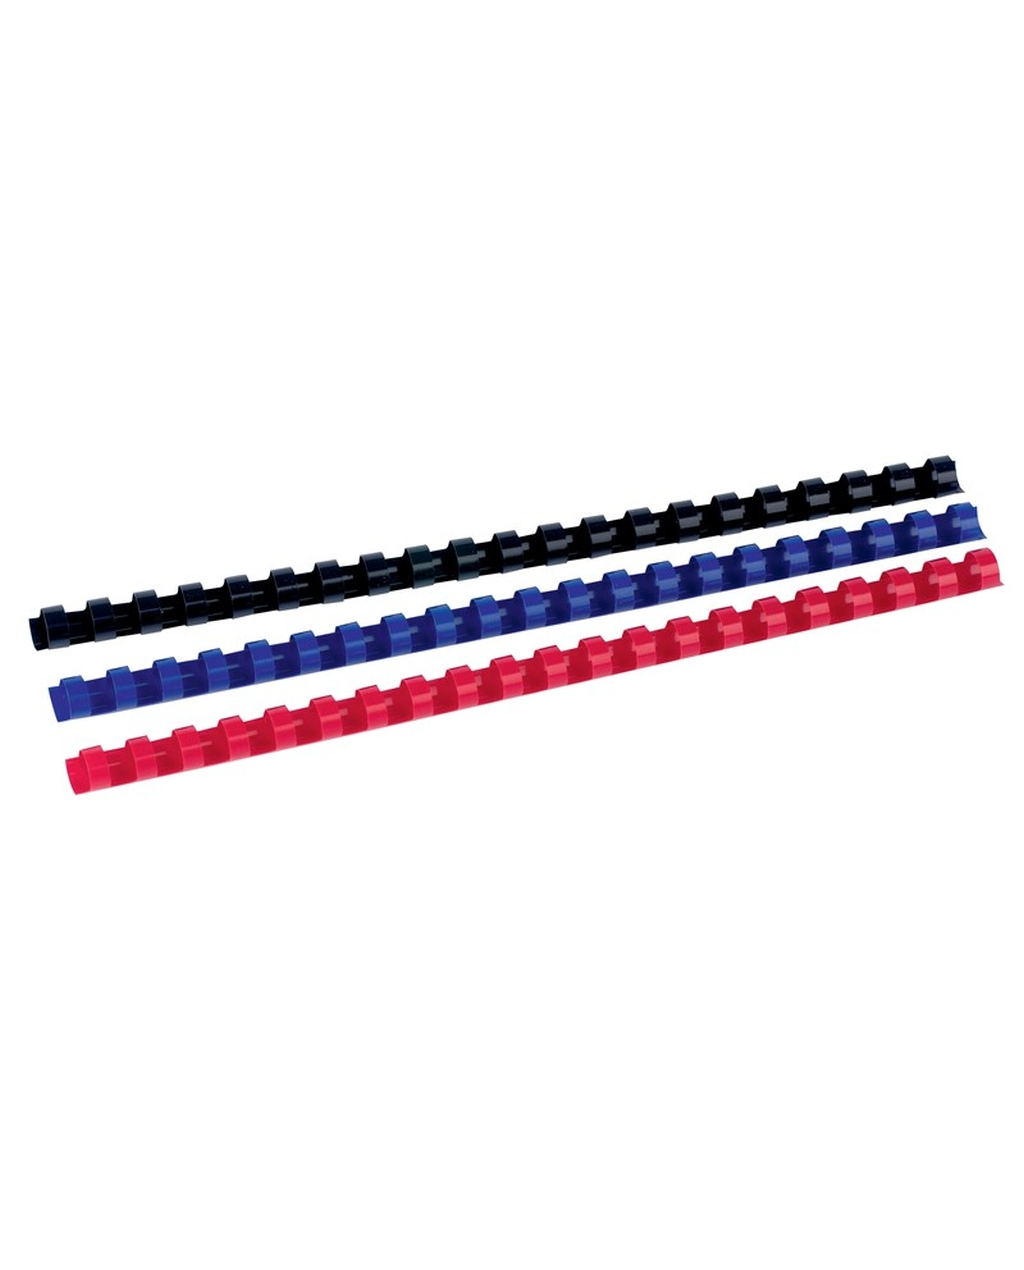 12mm Plastic Combs